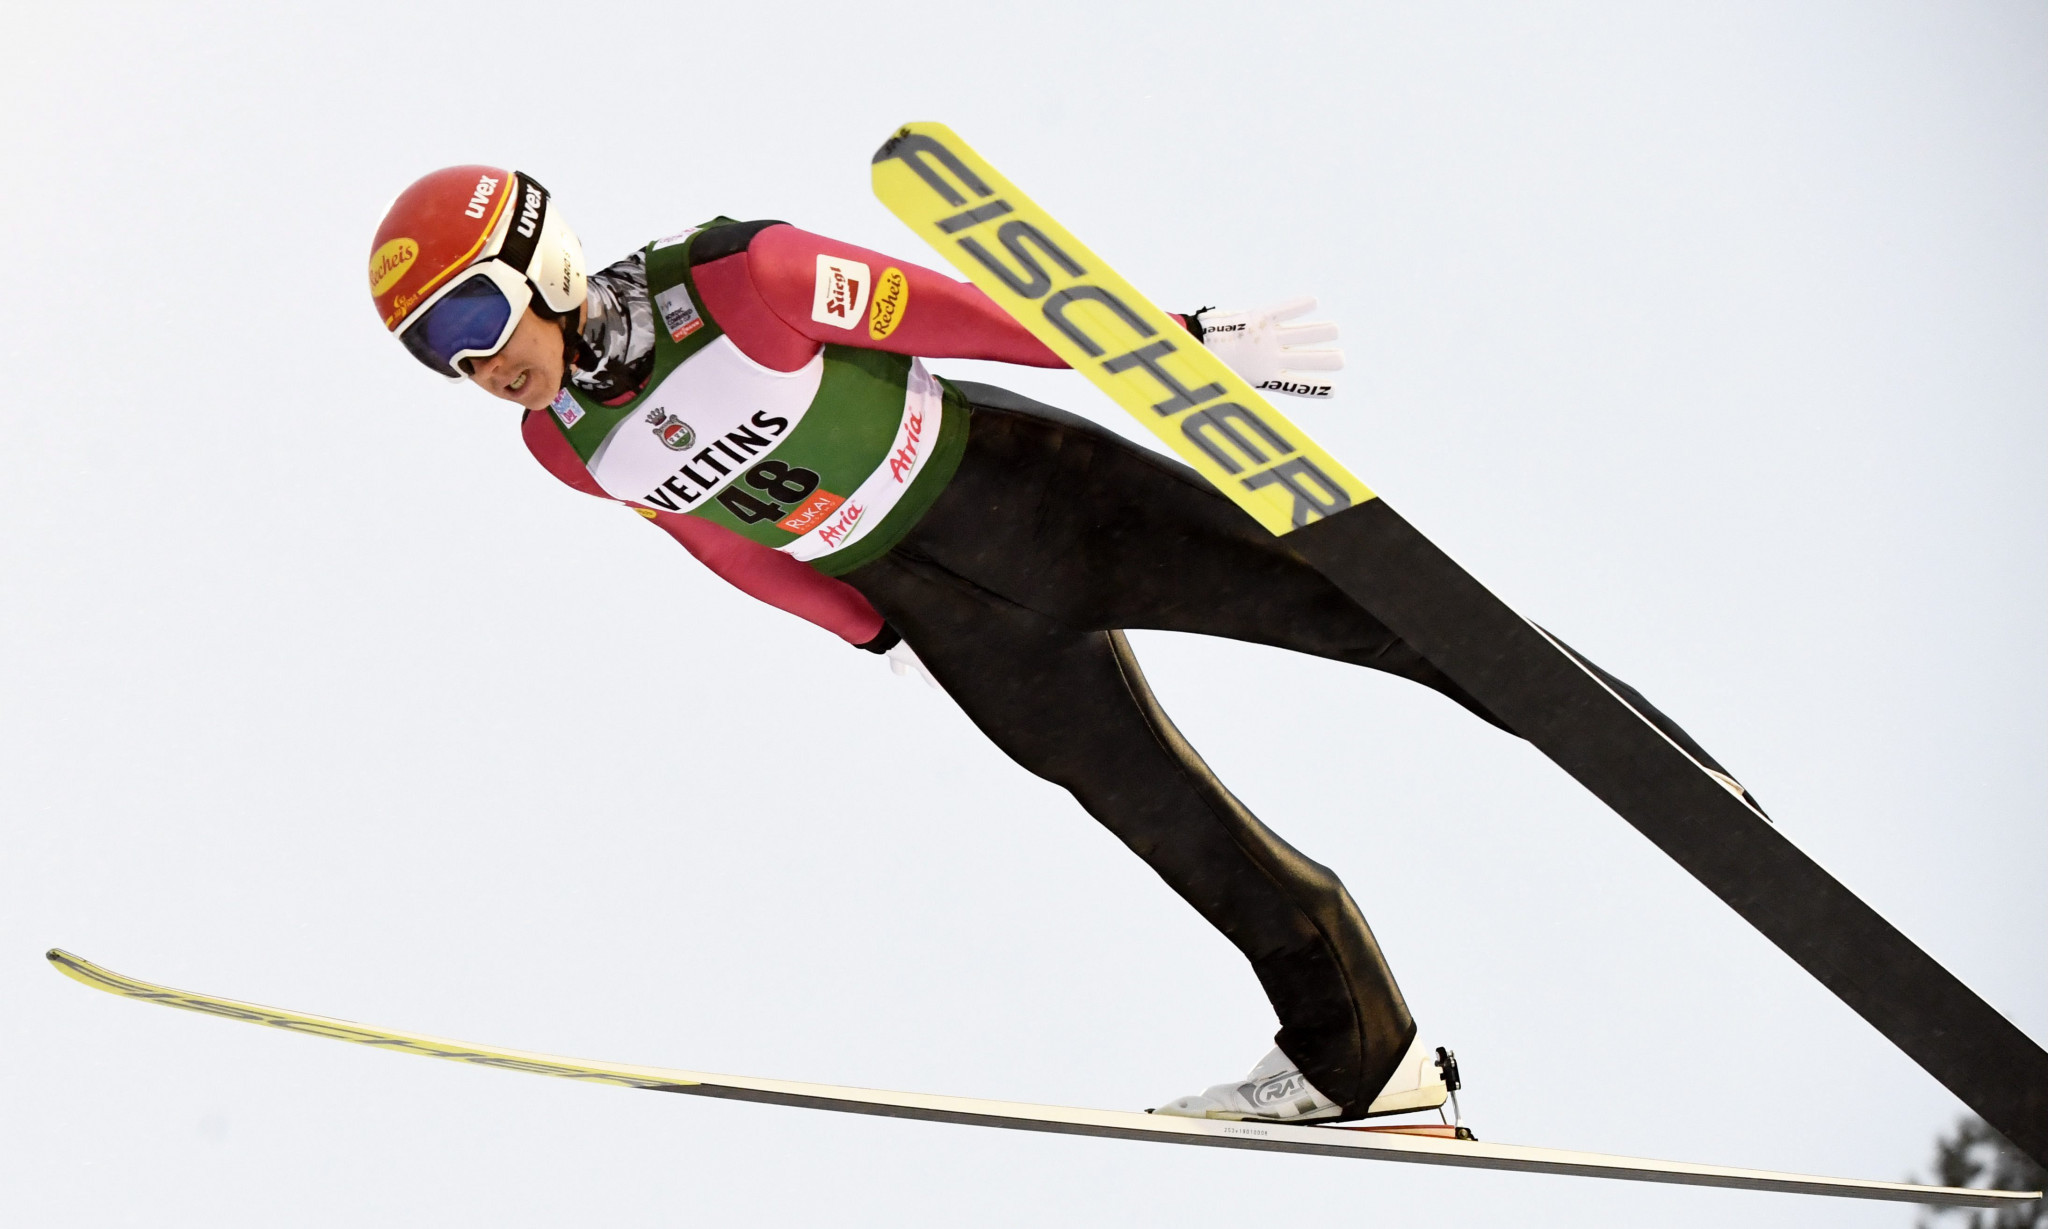 Seidl clinches shock FIS Nordic Combined World Cup Triple triumph